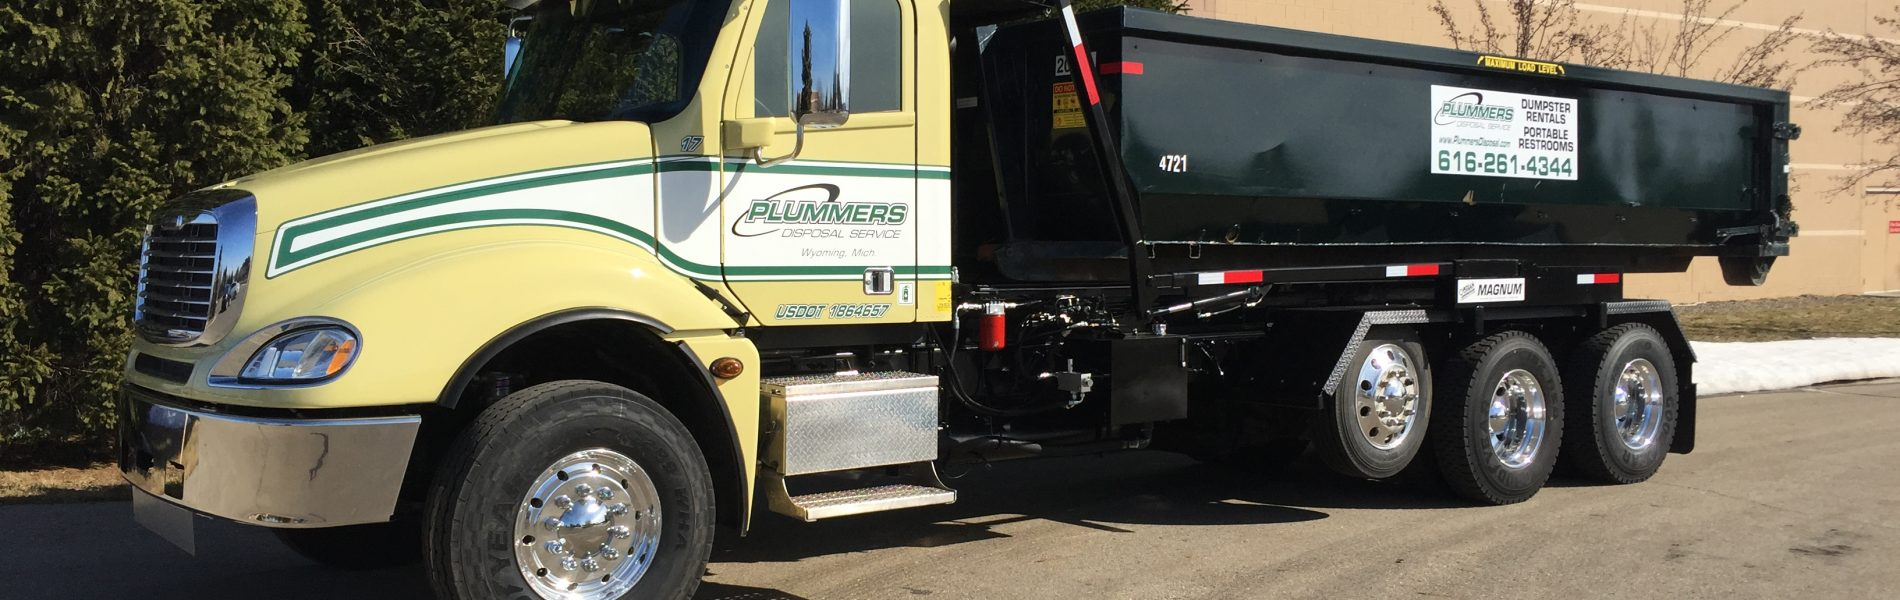 Roll Off Dumpster Truck from Plummers Disposal Services